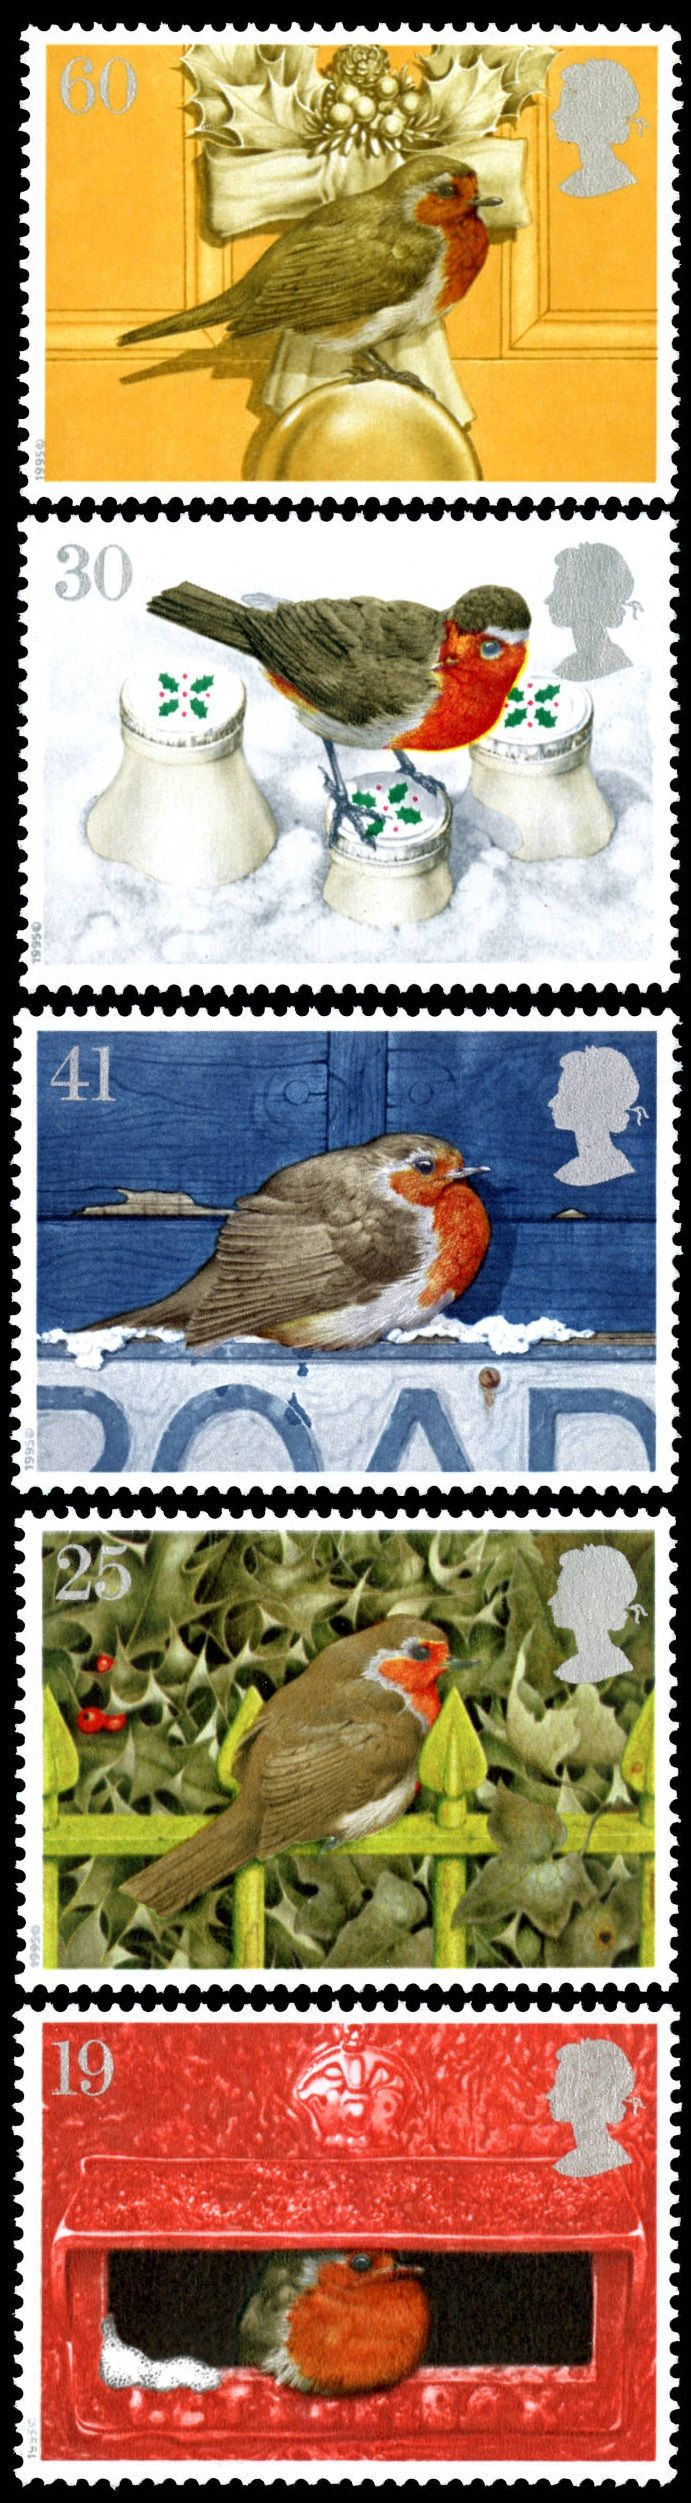 Royal Mail 1995 - Christmas